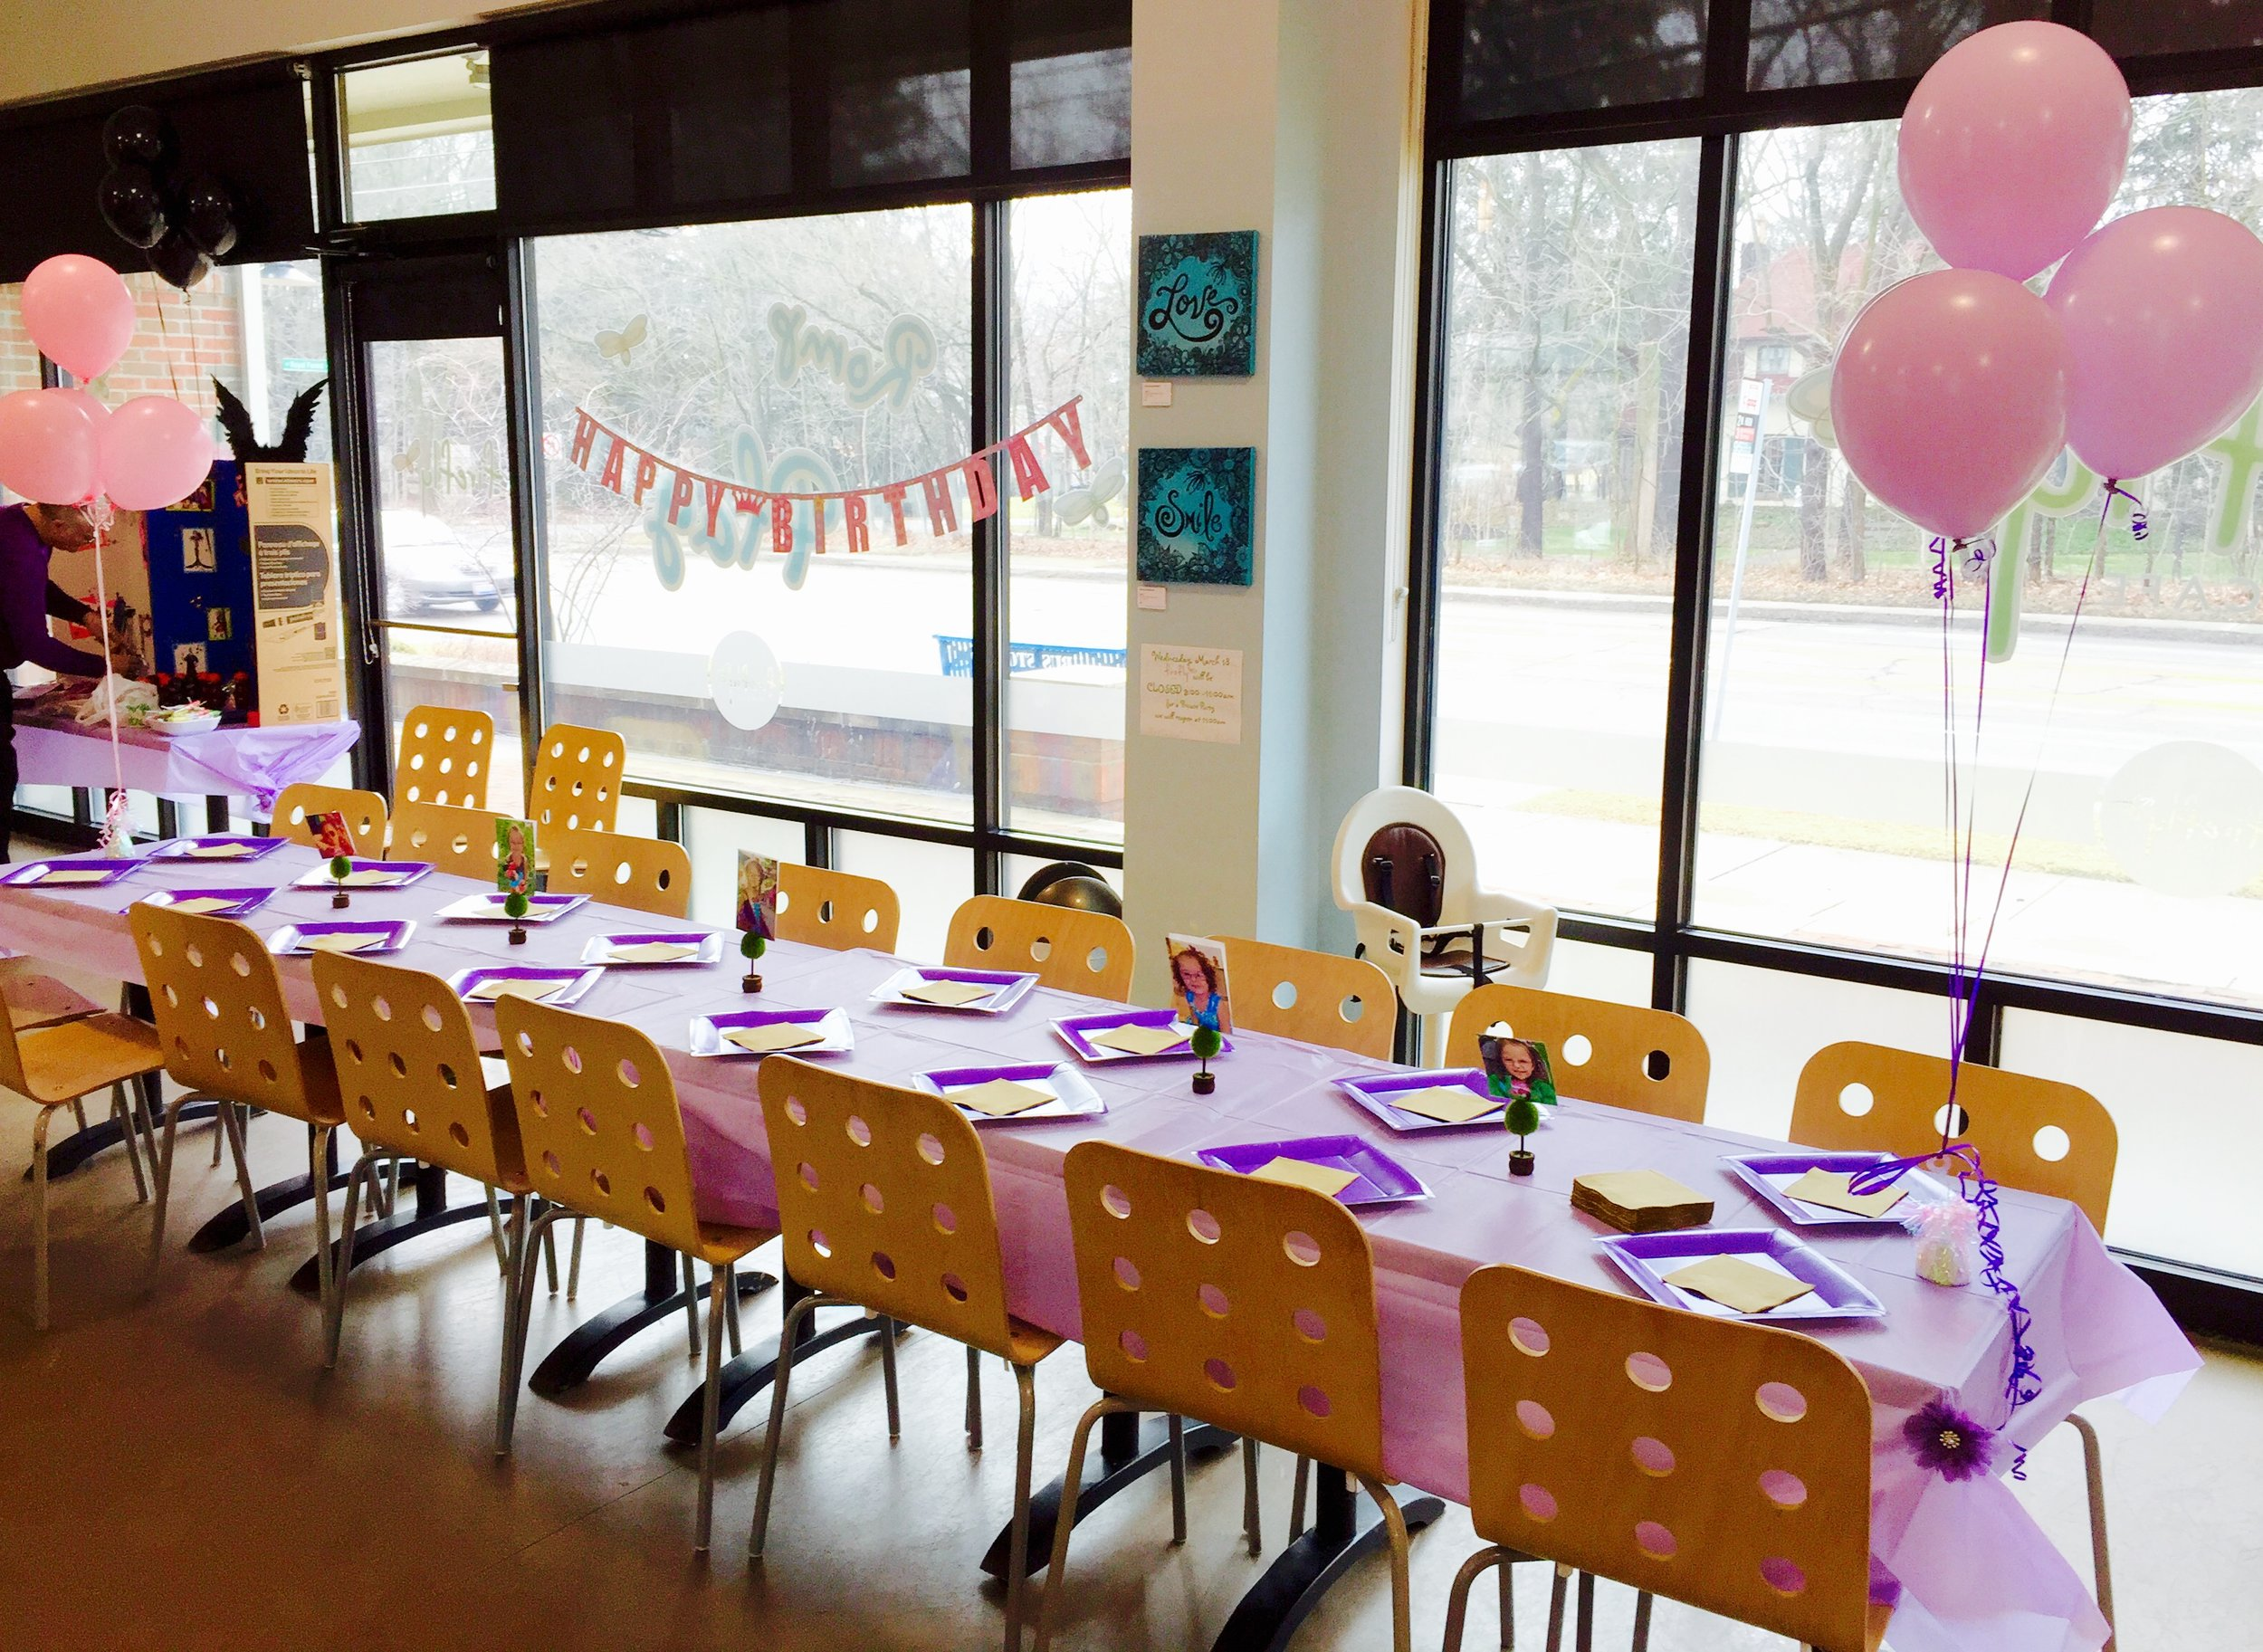 PARTY! - Private rentals are available for all your party needs! Firefly Play Cafe is the perfect space for birthday parties, baby showers and family celebrations.